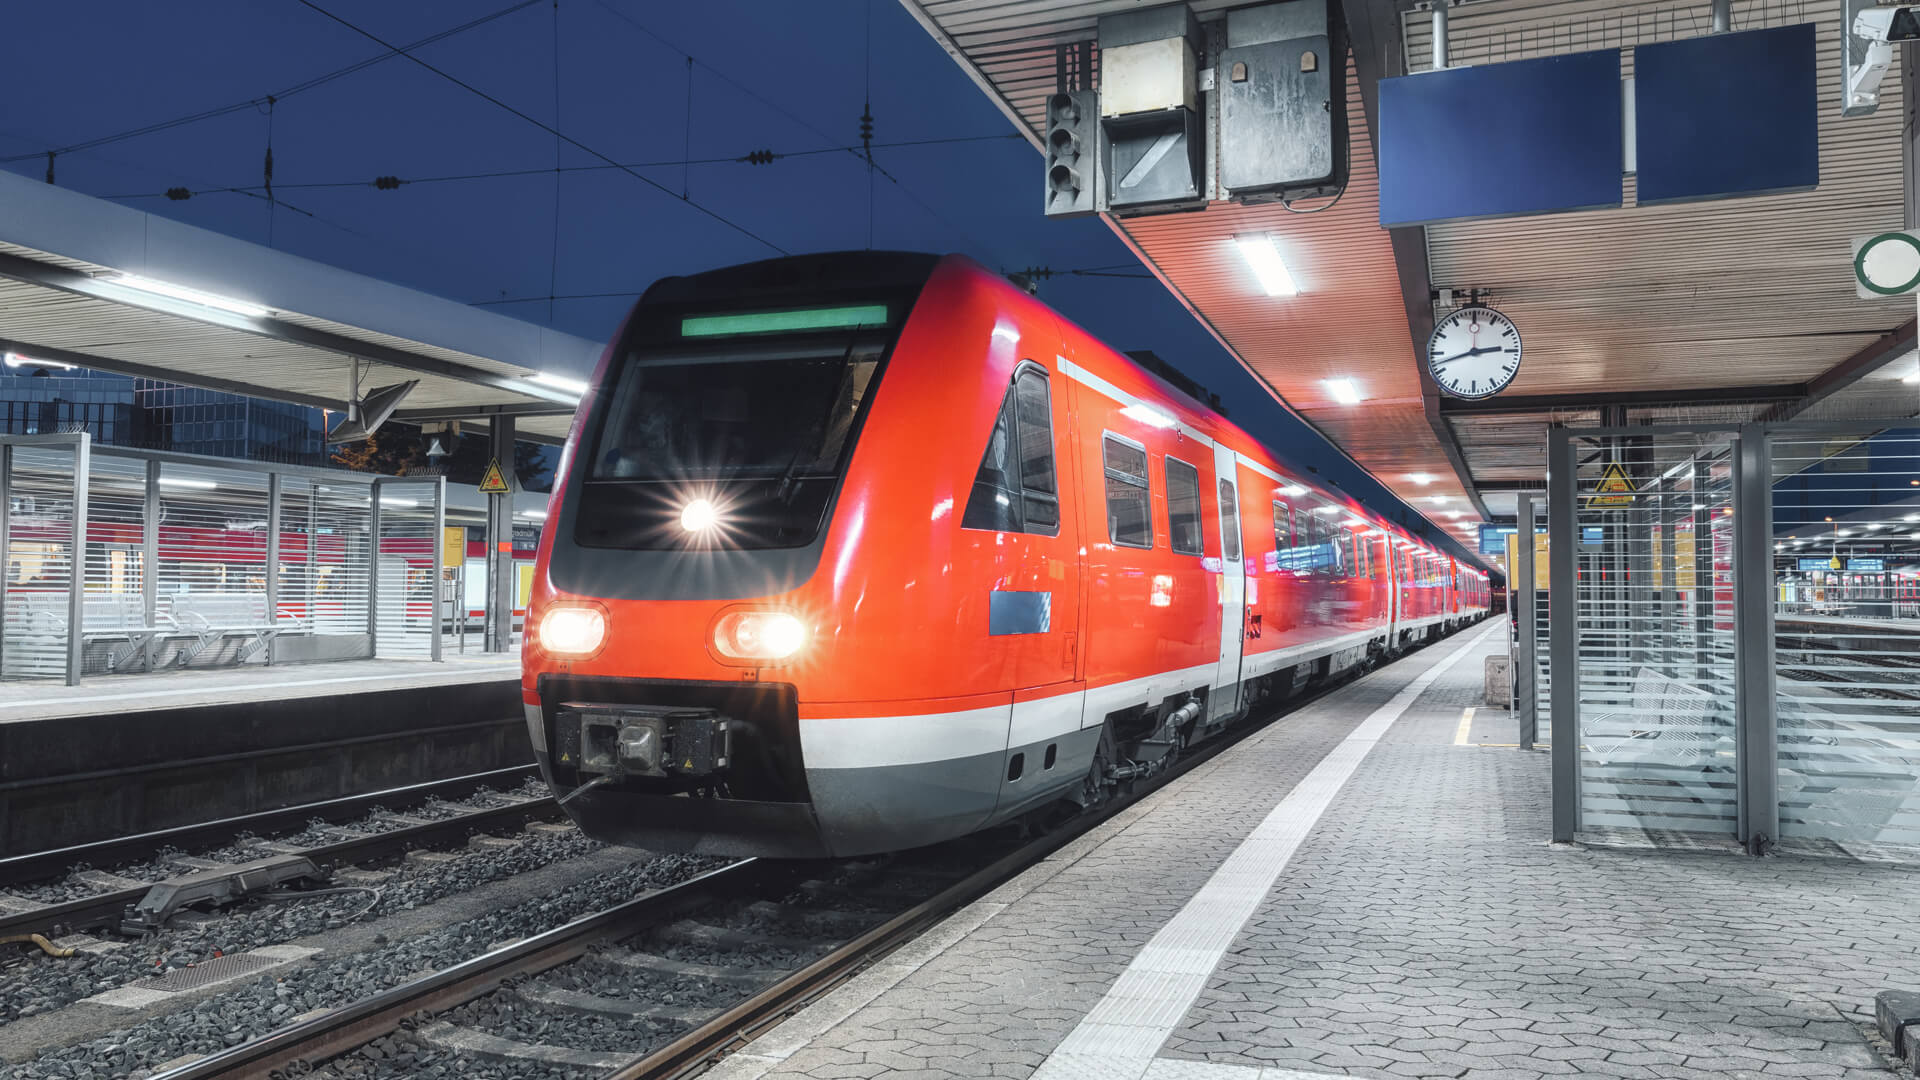 What are the reasons for taking DB timetable information service?